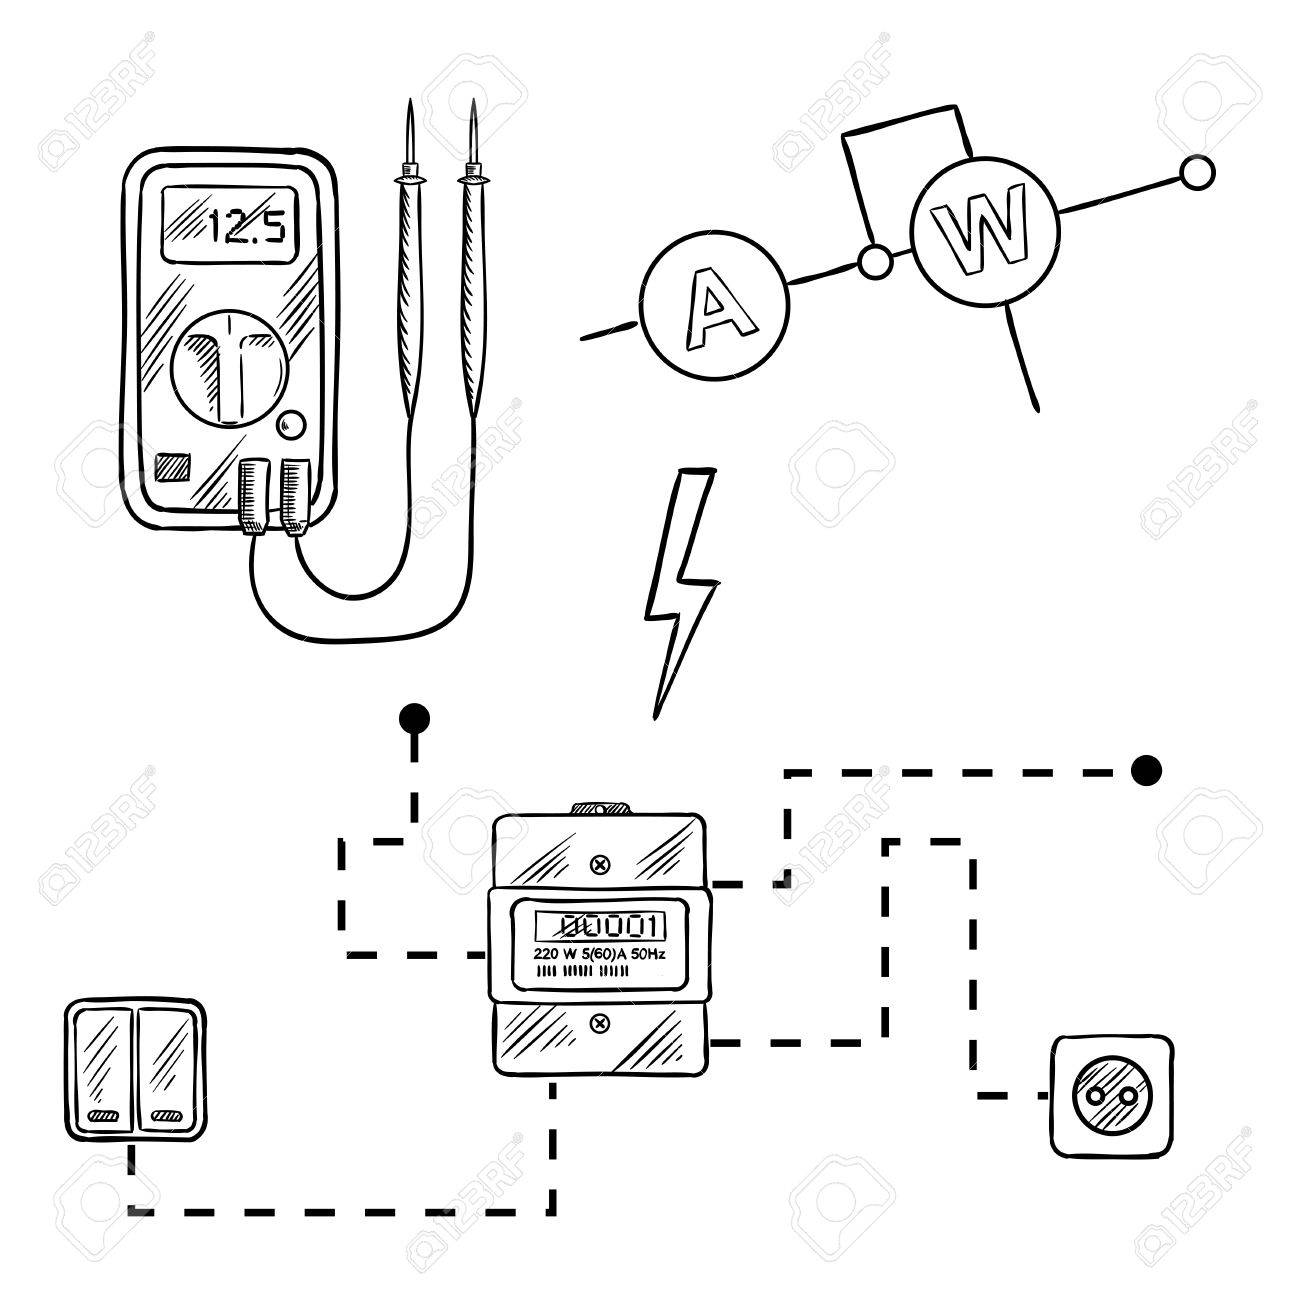 electrical socket diagram nilza net on simple circuit diagram electrical outlets